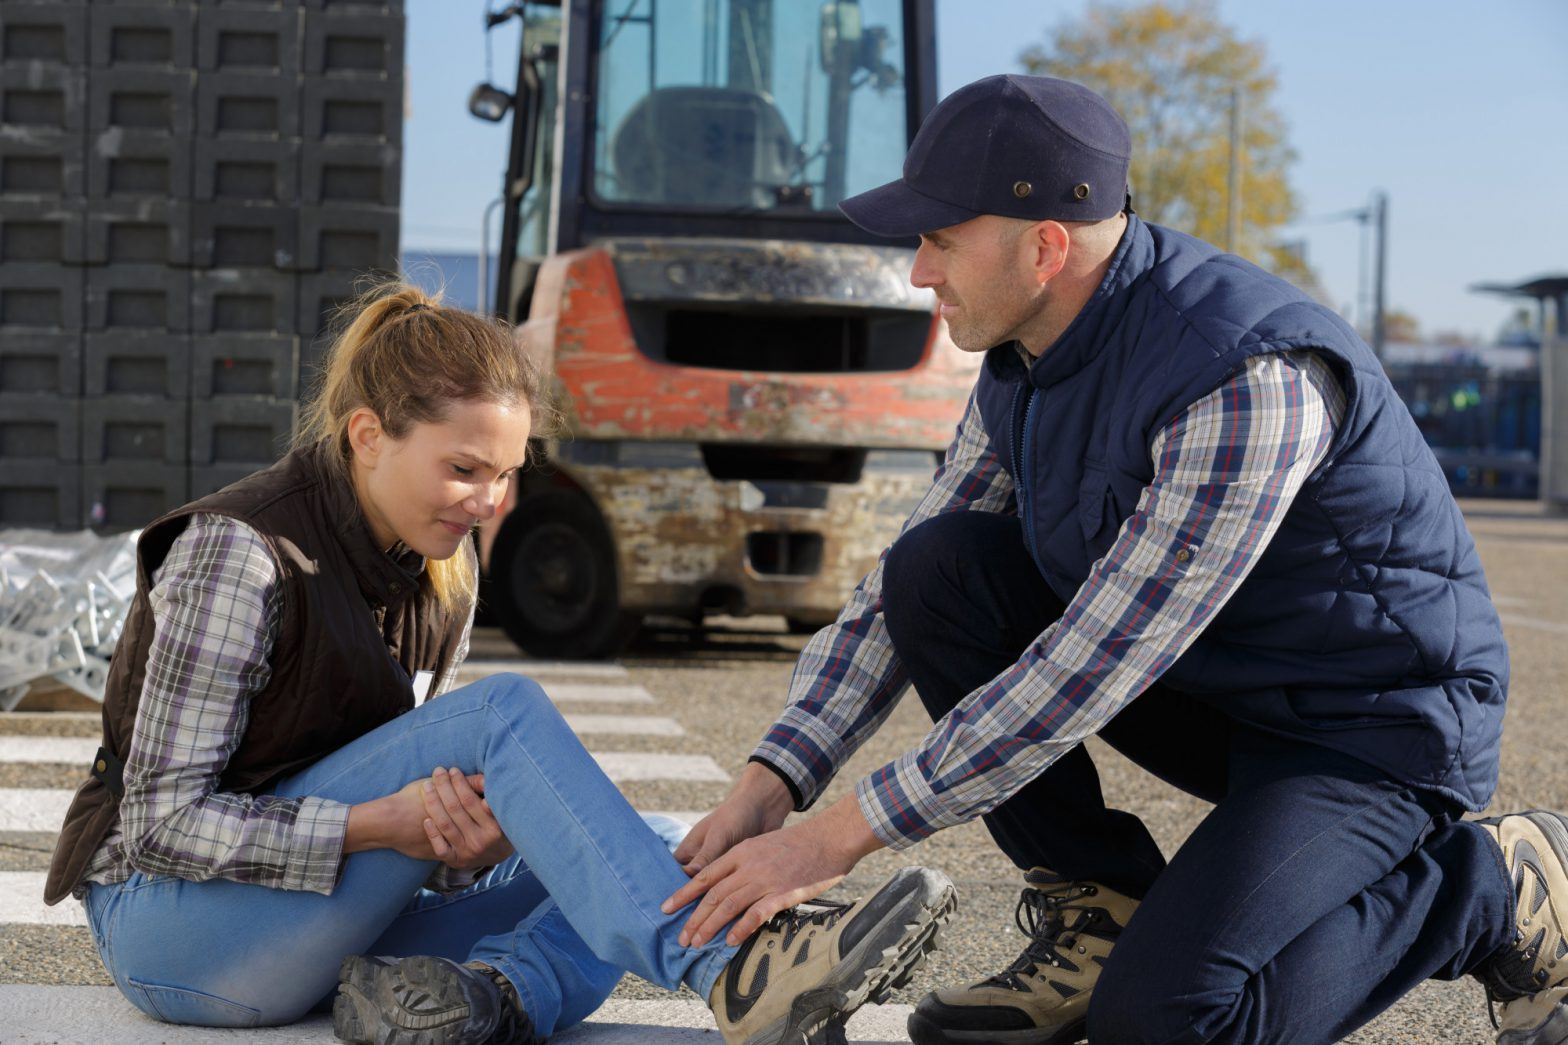 Calculating Workers' Compensation Insurance